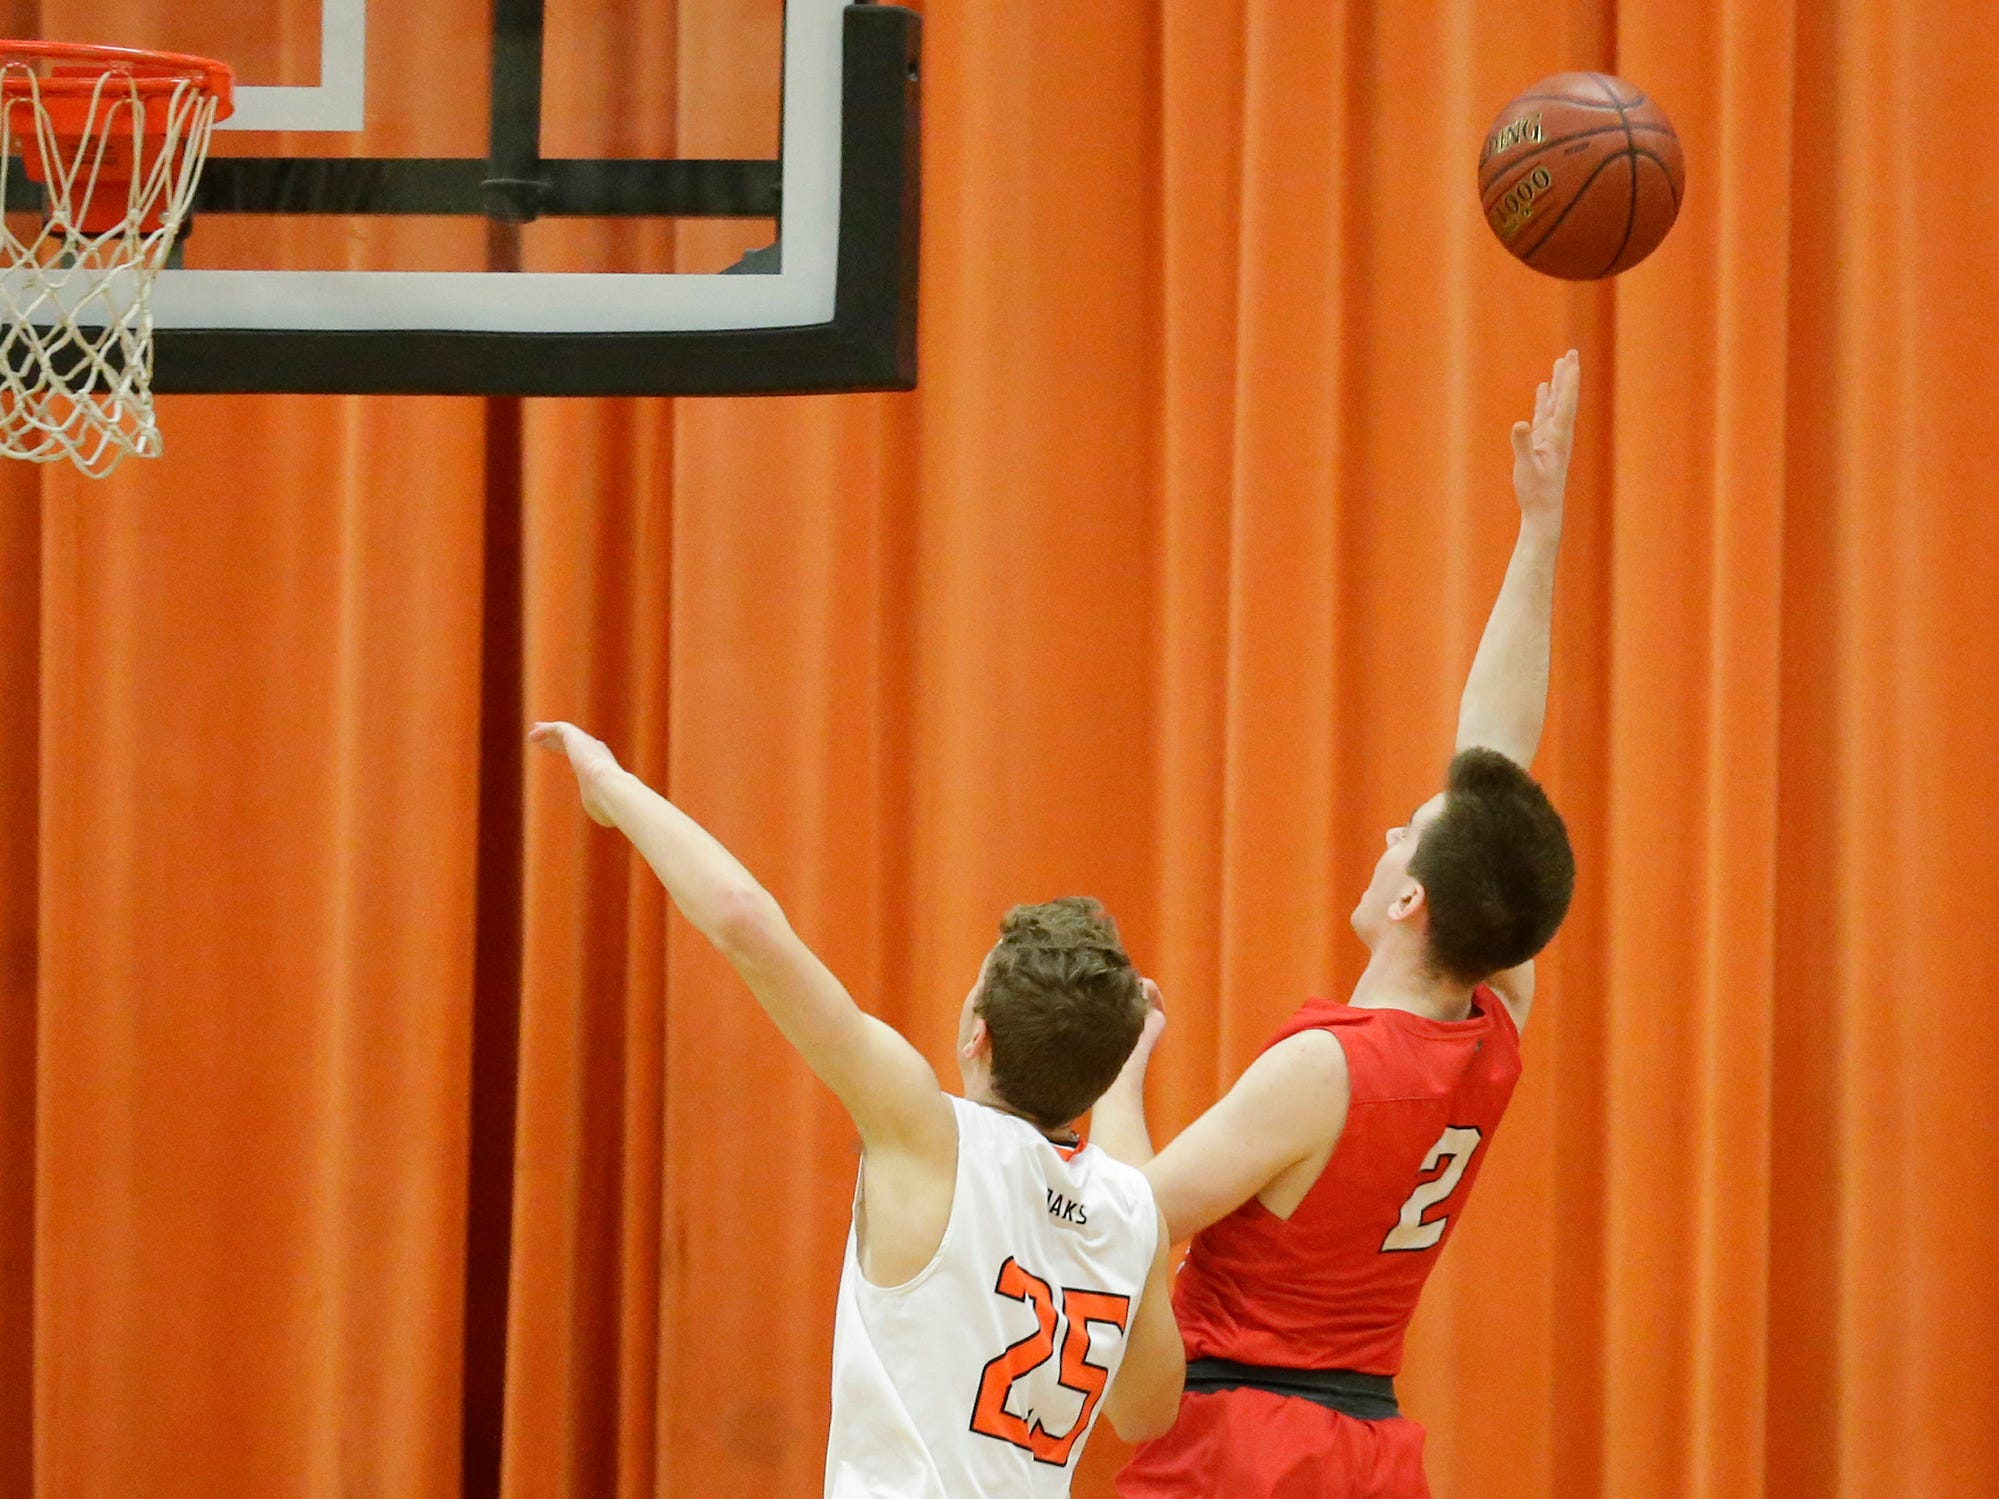 Oakfield High School boys basketball's Grant Bass fouls Lourdes Academy's Henry Noone during their game Thursday, January 24, 2019 in Oakfield. Lourdes Academy won the game 83-48. Doug Raflik/USA TODAY NETWORK-Wisconsin